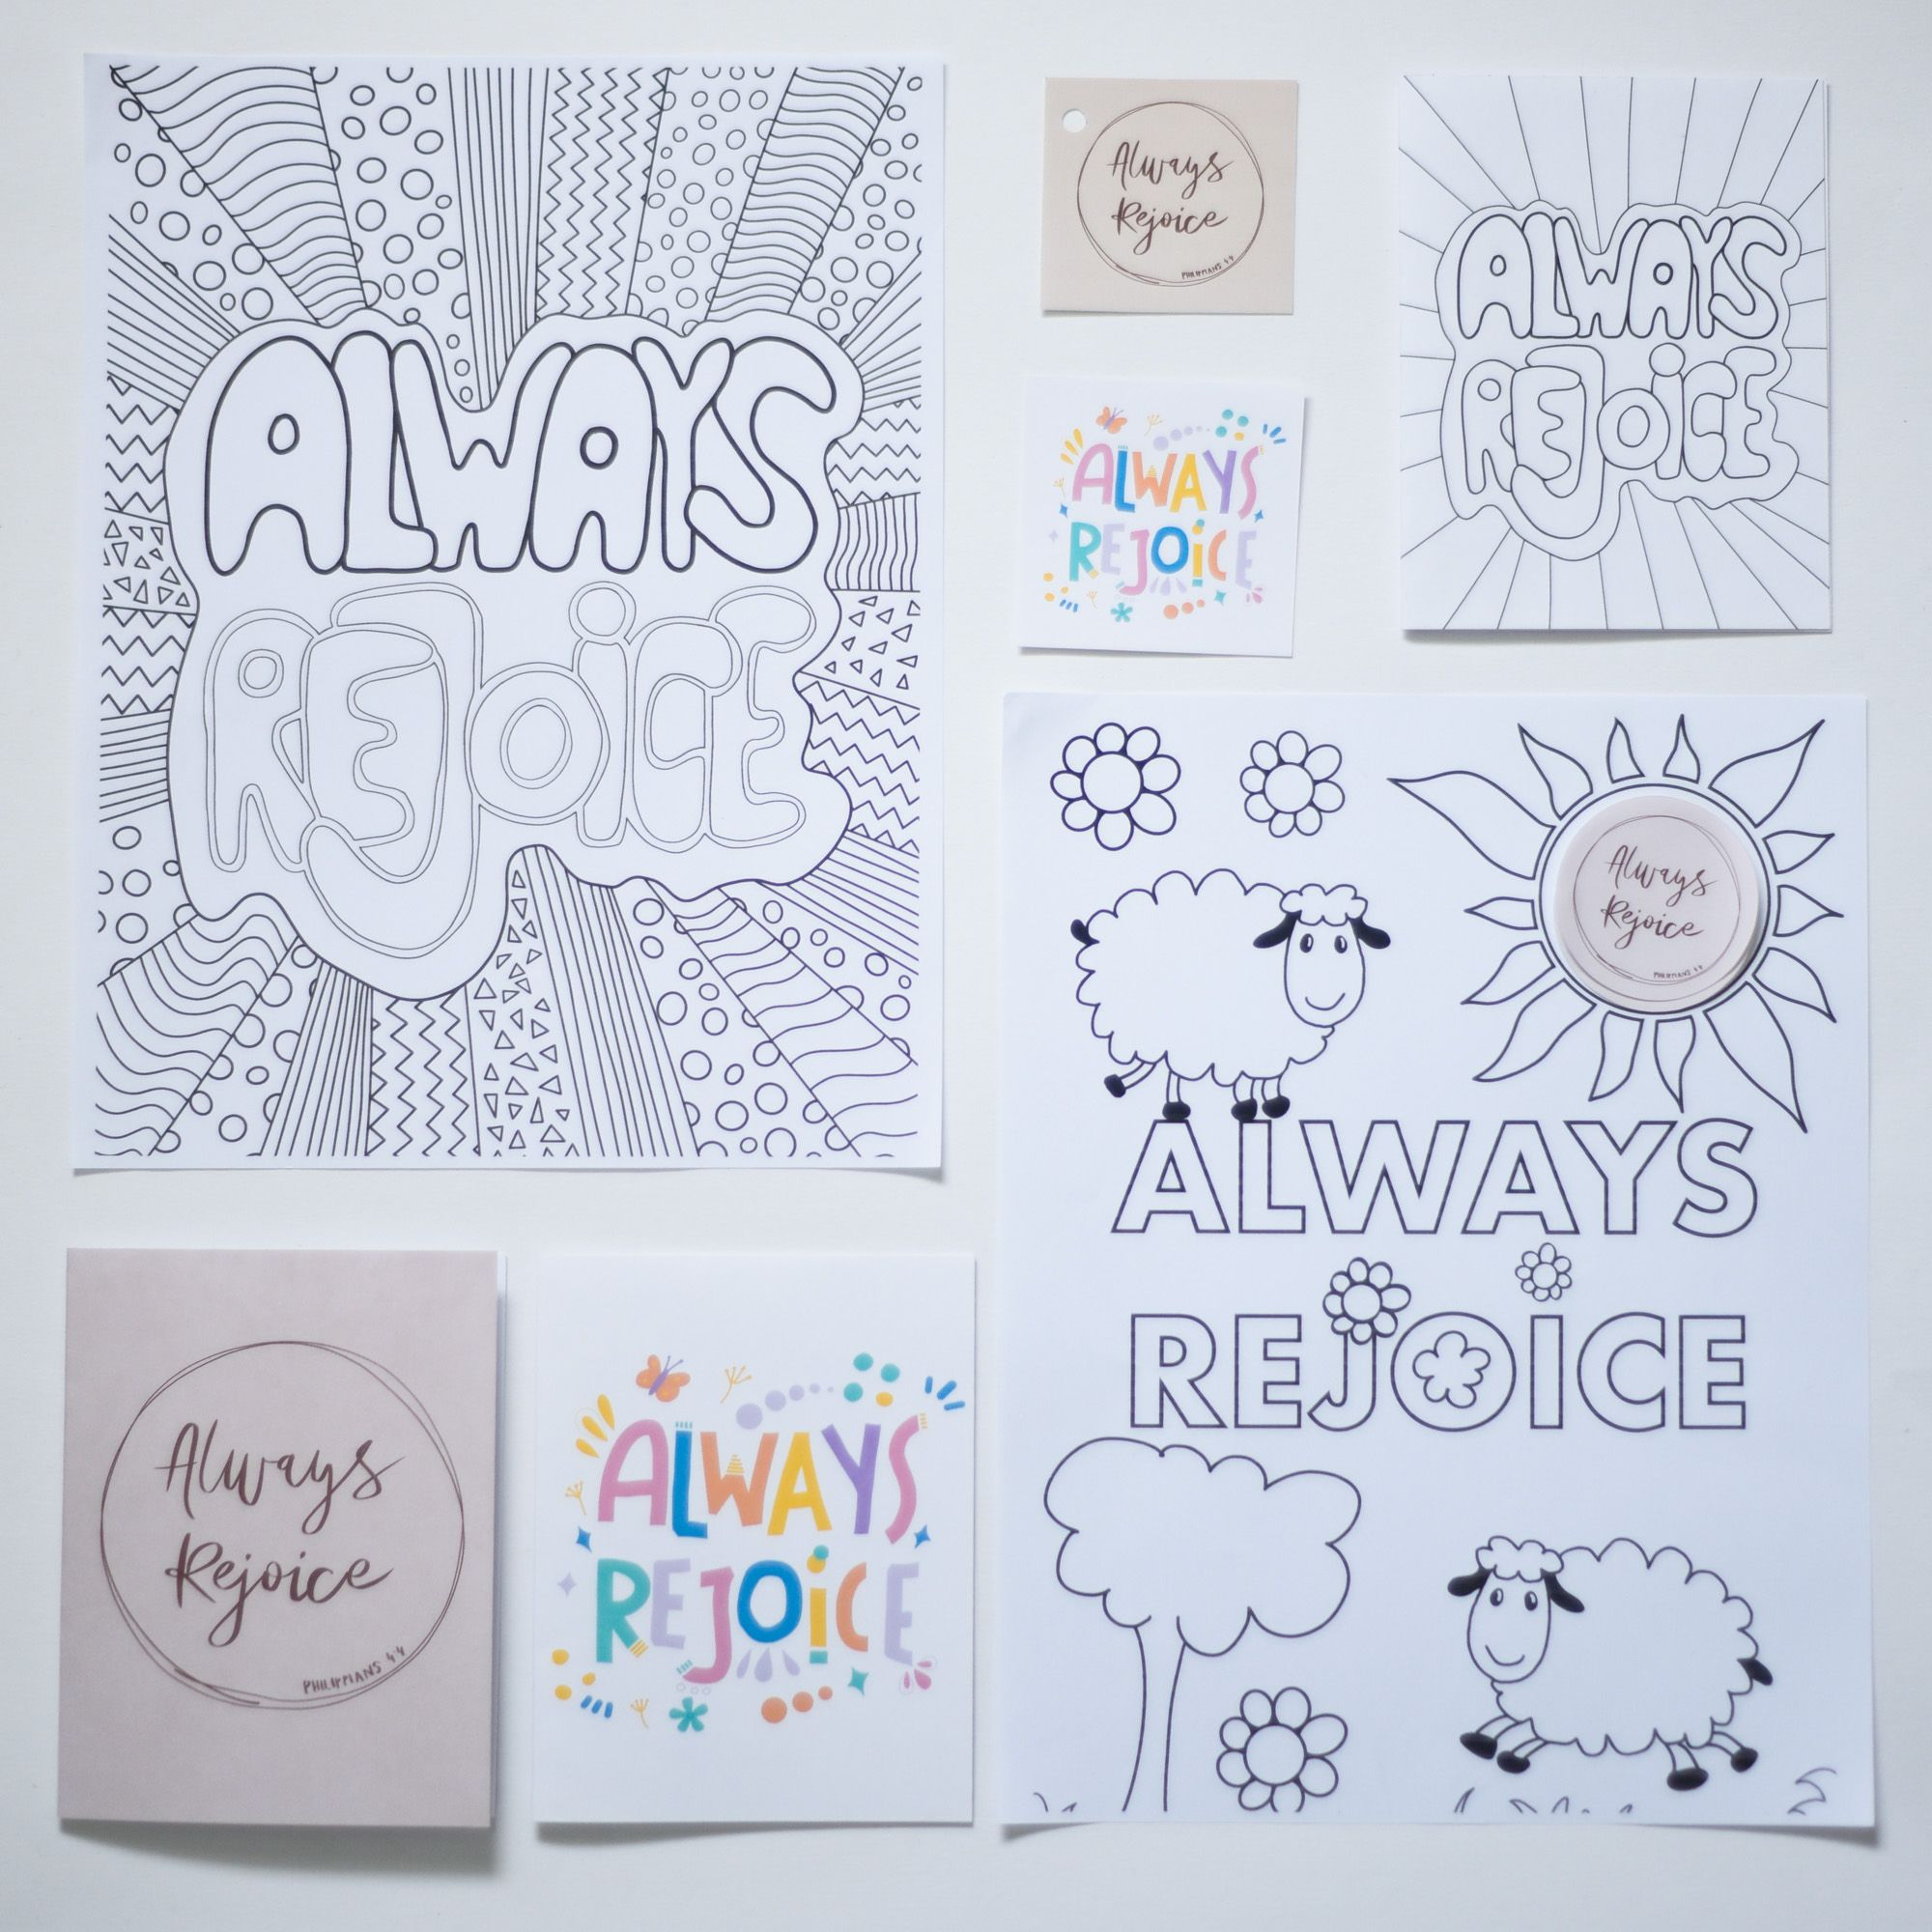 Always Rejoice Printable Convention Set 2020 Convention Gift Greeting Cards Coloring Pages Tags Best Gift Ever Jw Digital Convention Gifts Printable Greeting Cards Jw Gifts